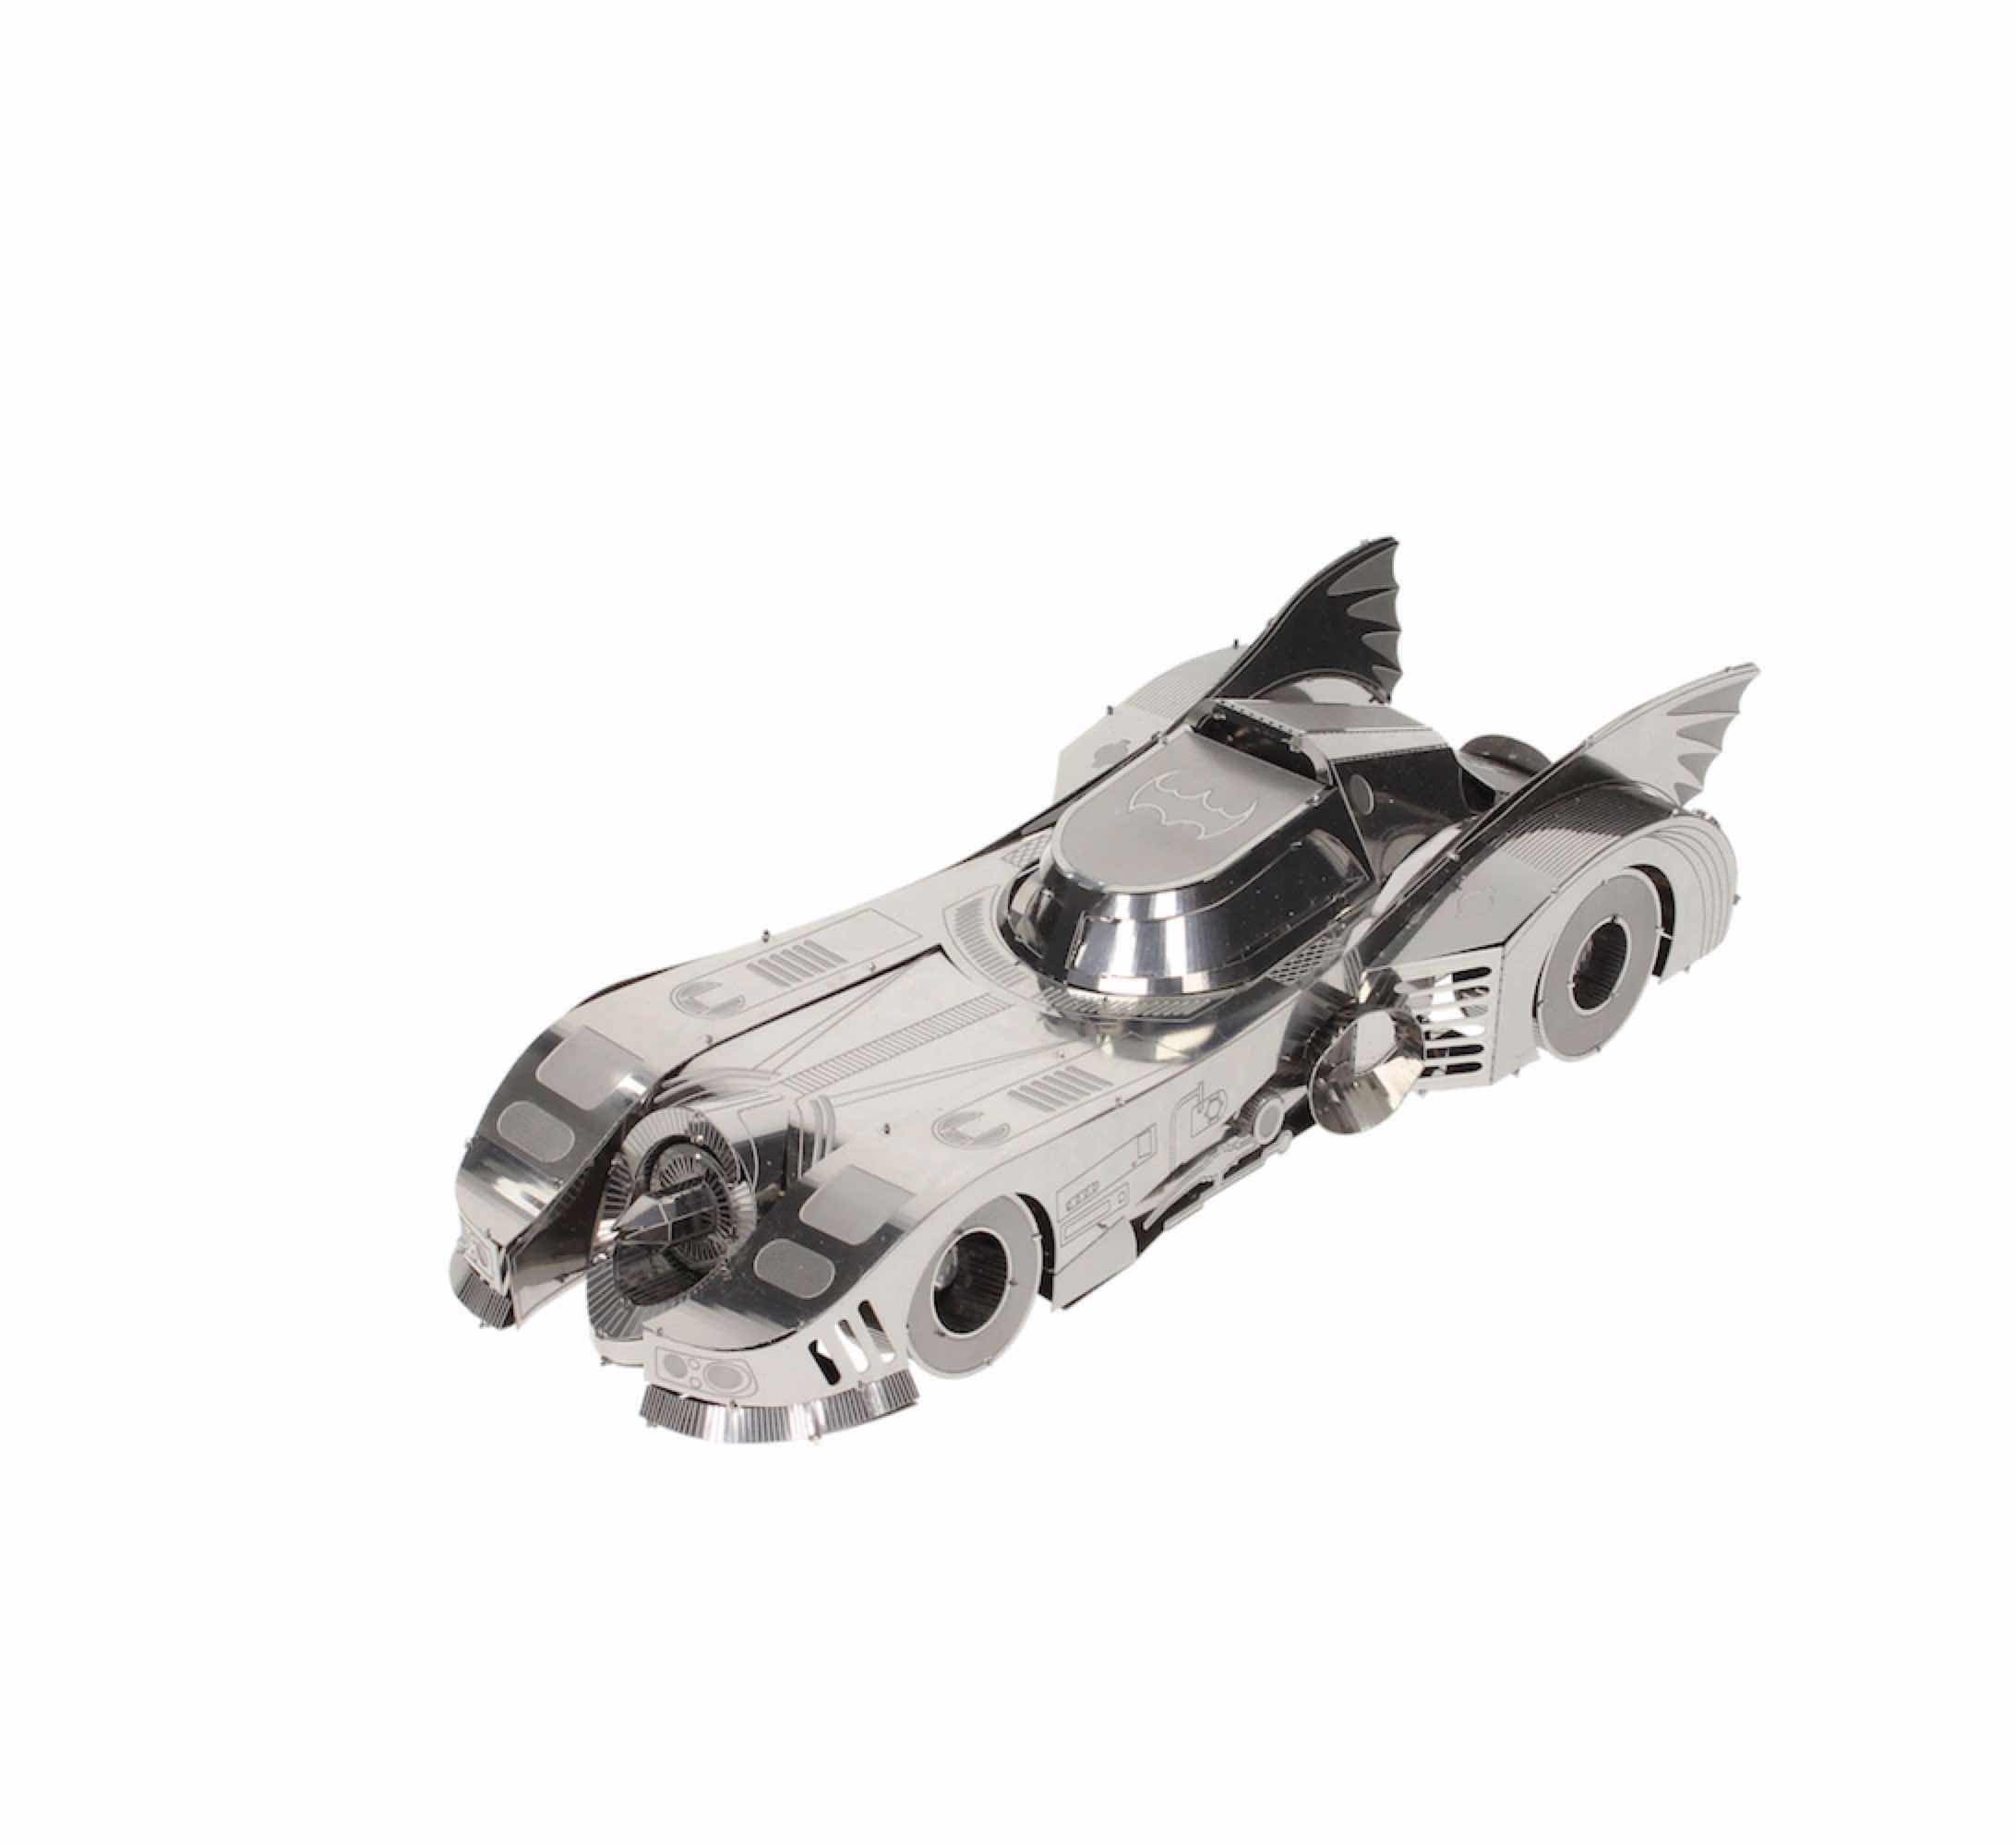 O.FLASH - BATMOVIL 1989 METAL MODEL KIT 3D UNIVERSO DC